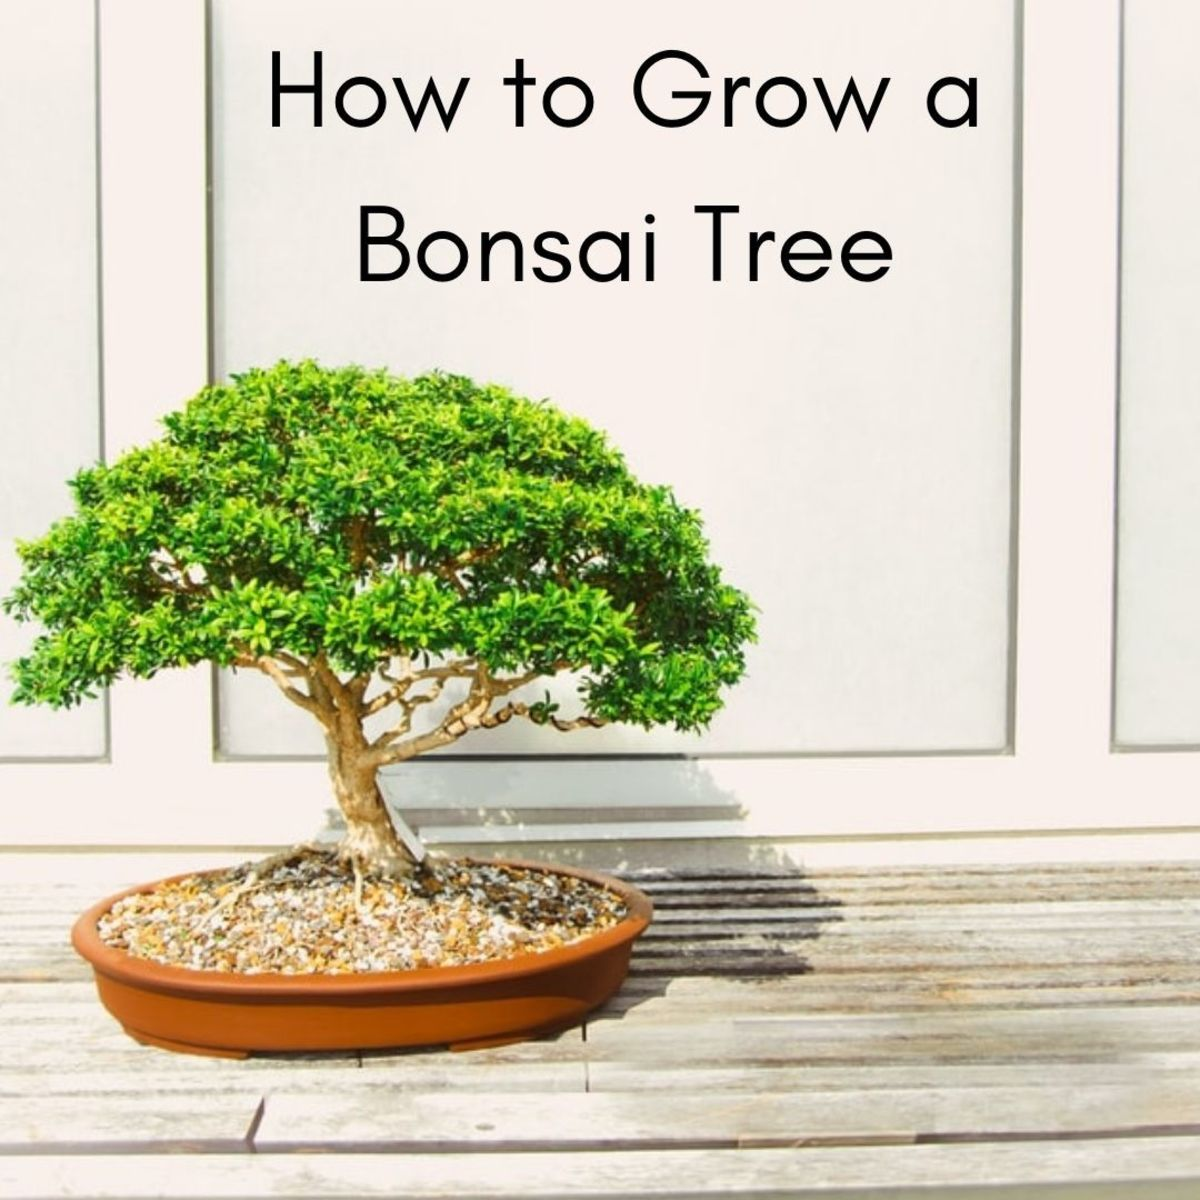 A bonsai tree is not, in fact, a dwarf tree that was bred to be small.